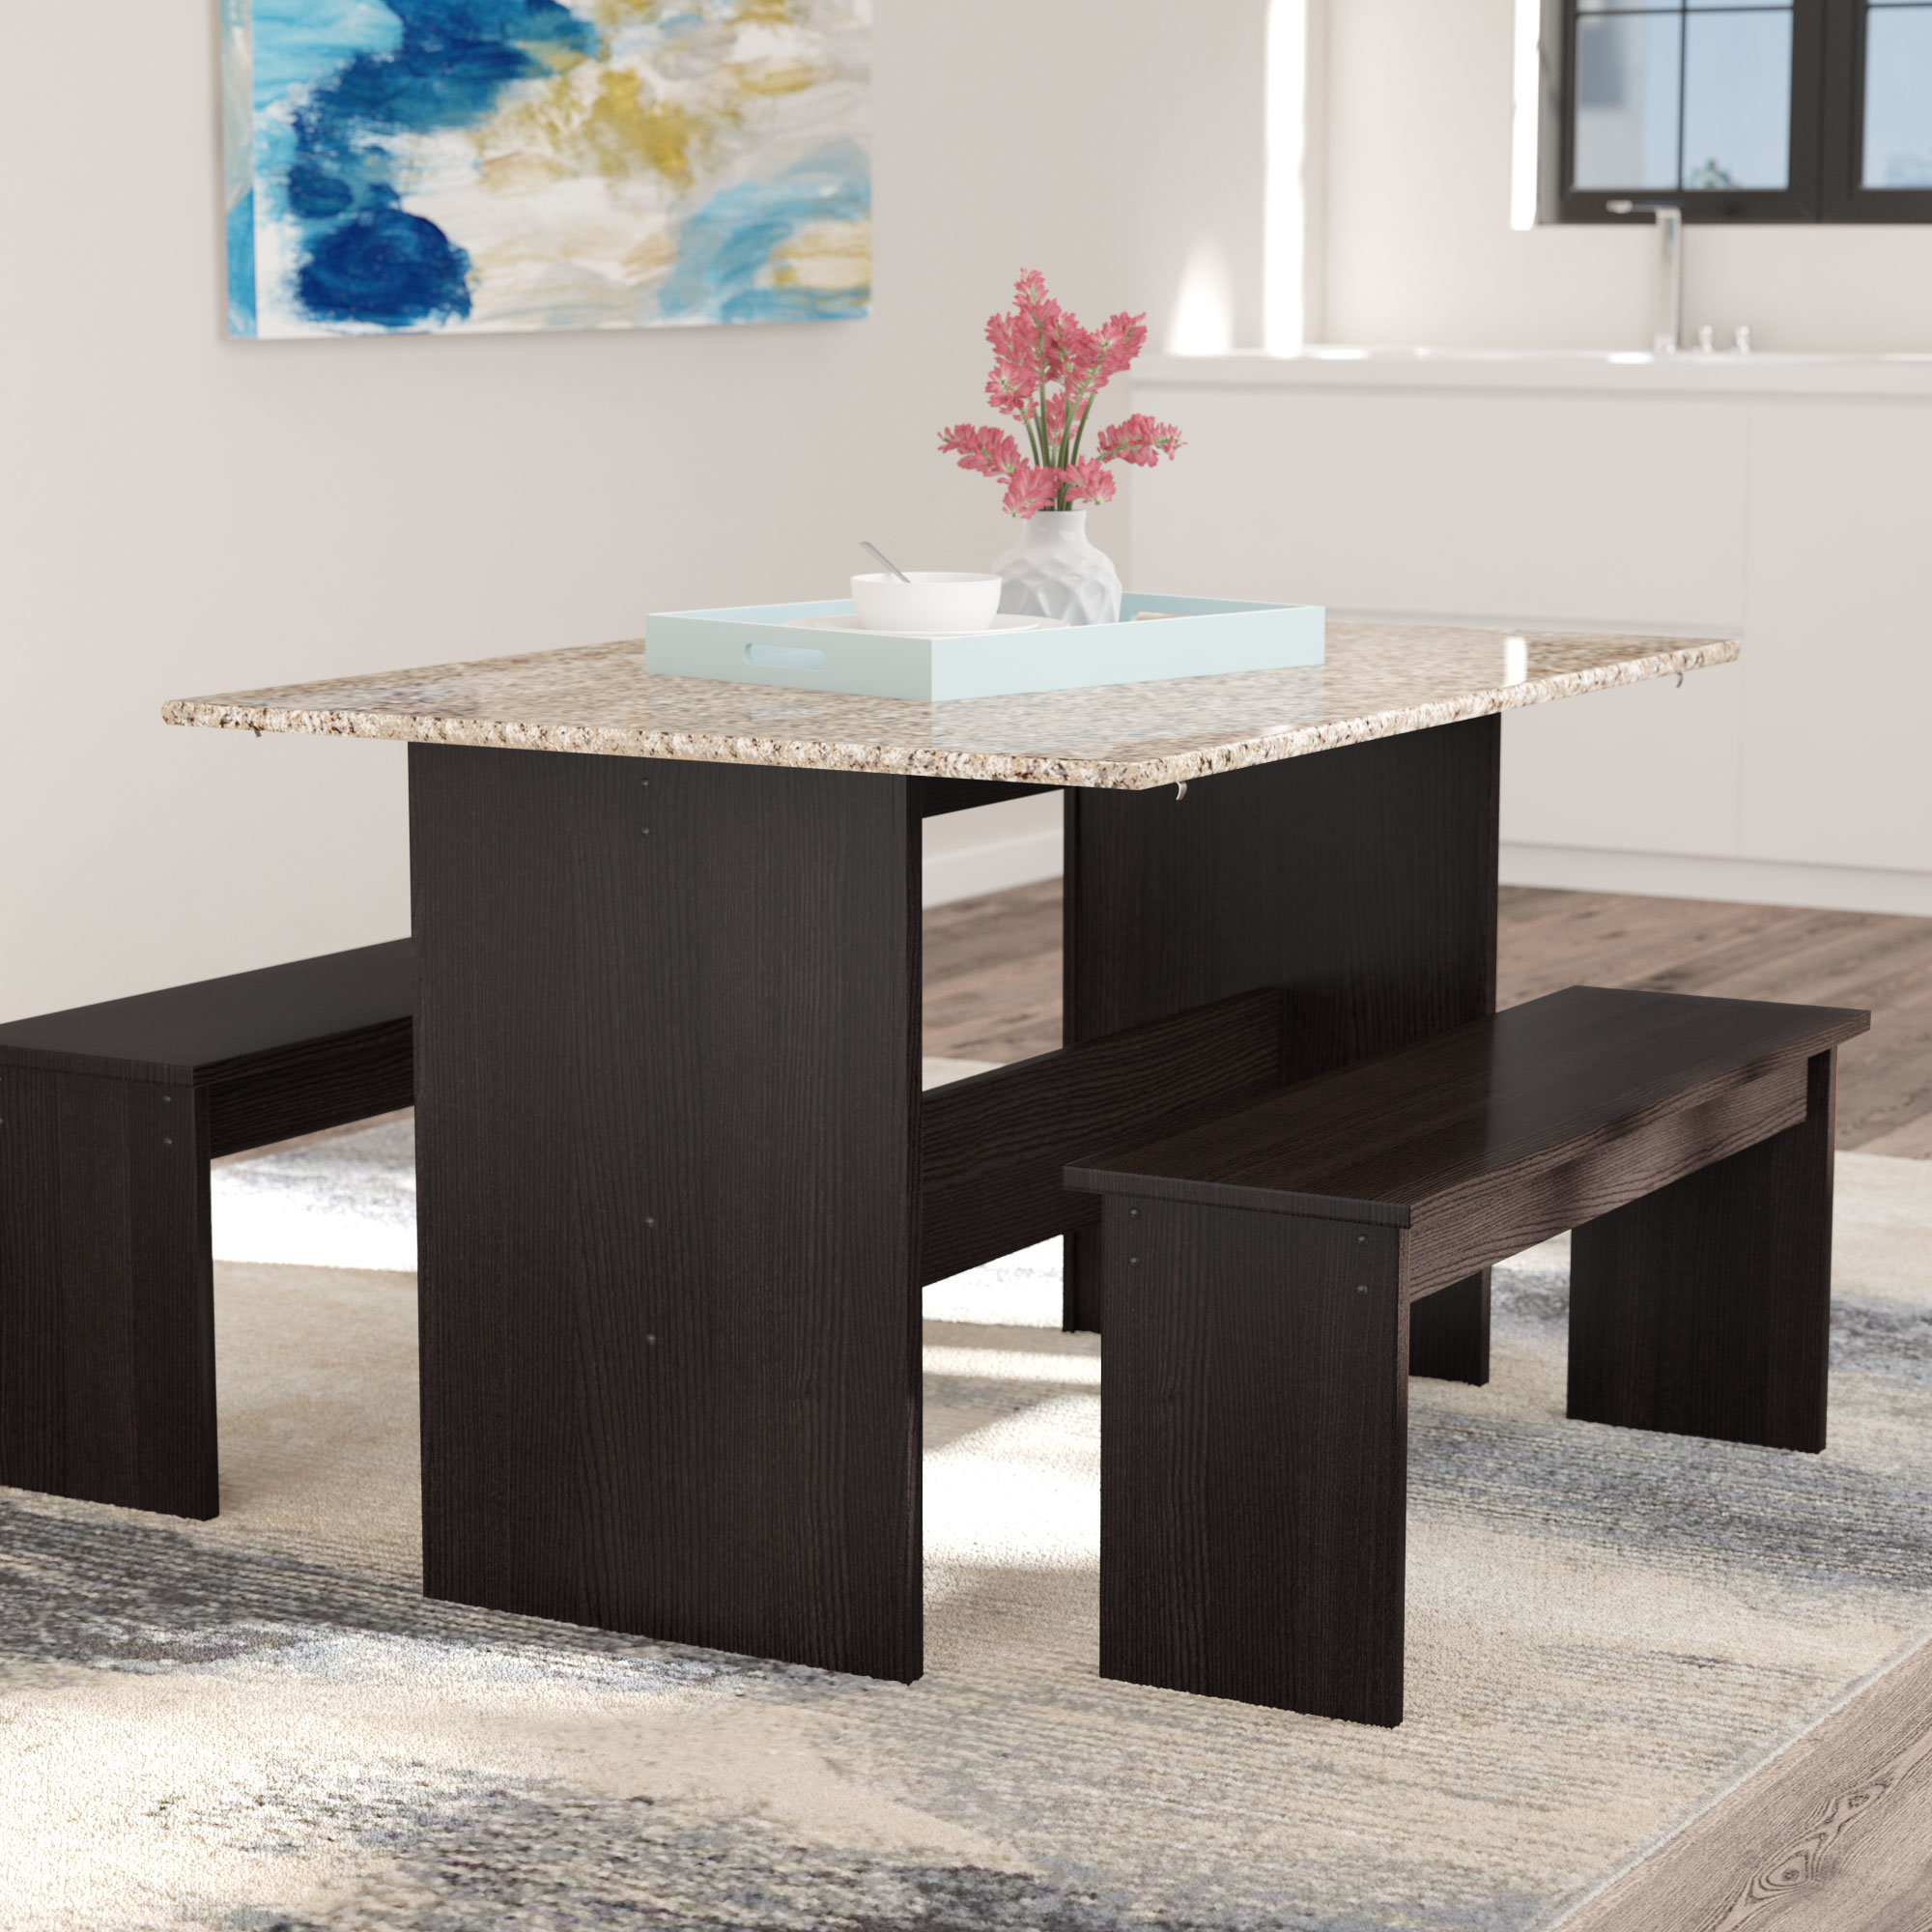 Ryker 3 Piece Dining Set For Current Ryker 3 Piece Dining Sets (Photo 1 of 20)